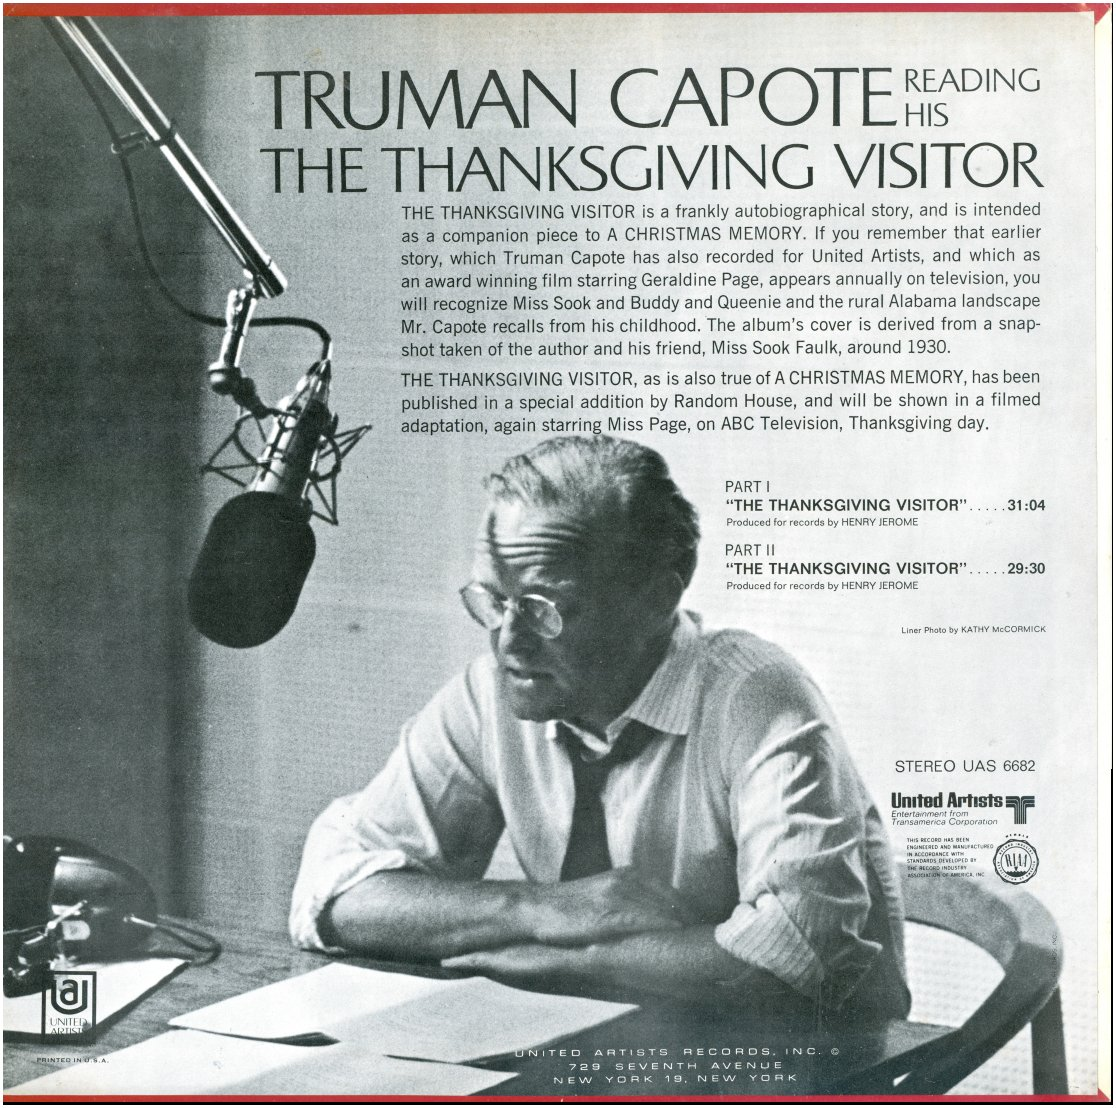 Truman Capote - The Thanksgiving Visitor